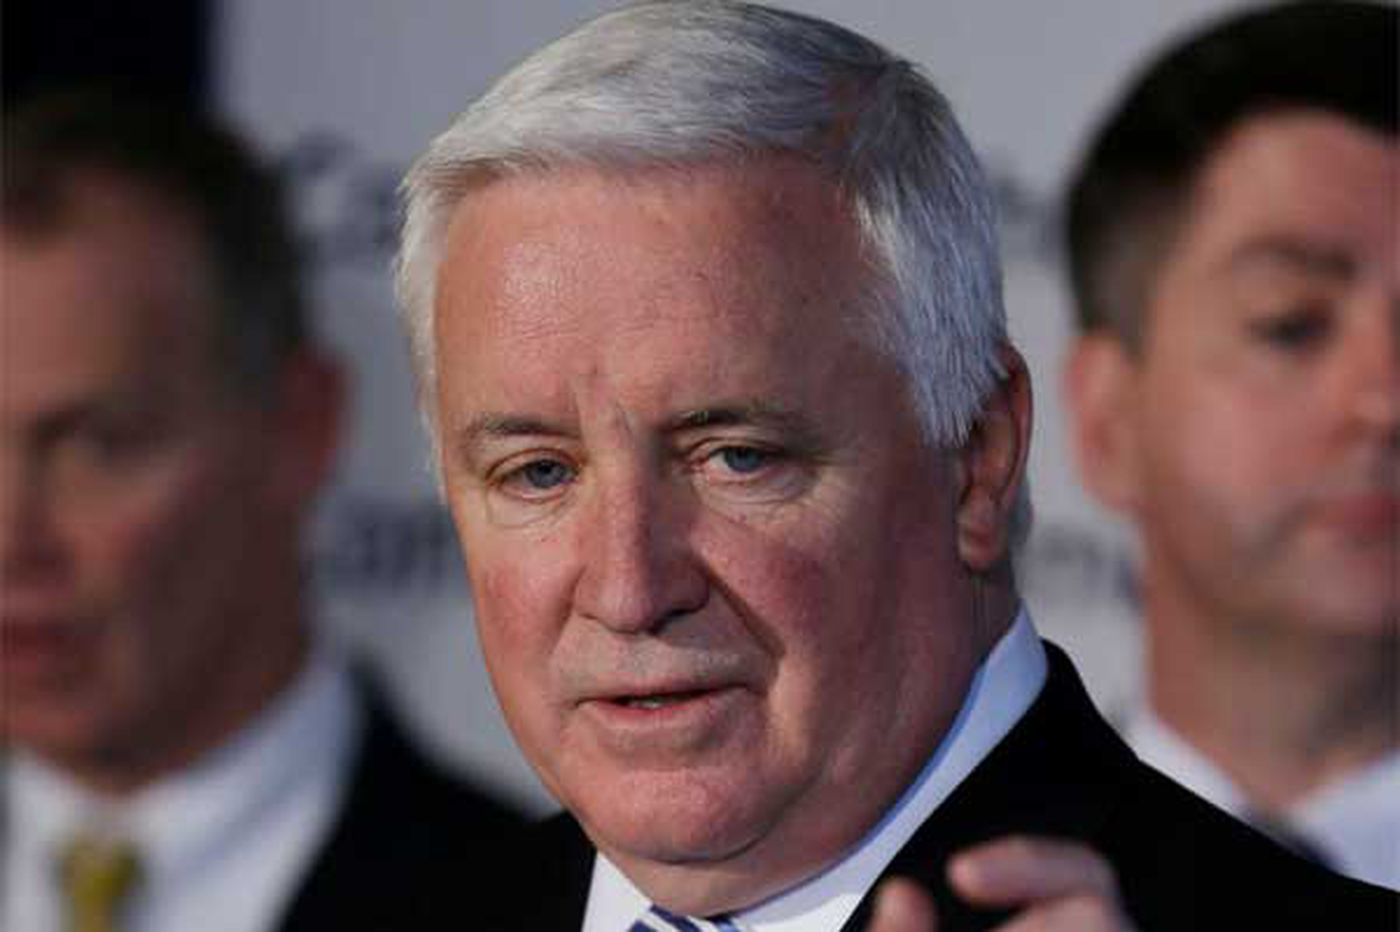 Corbett to Malvern audience: Dems twisted my words